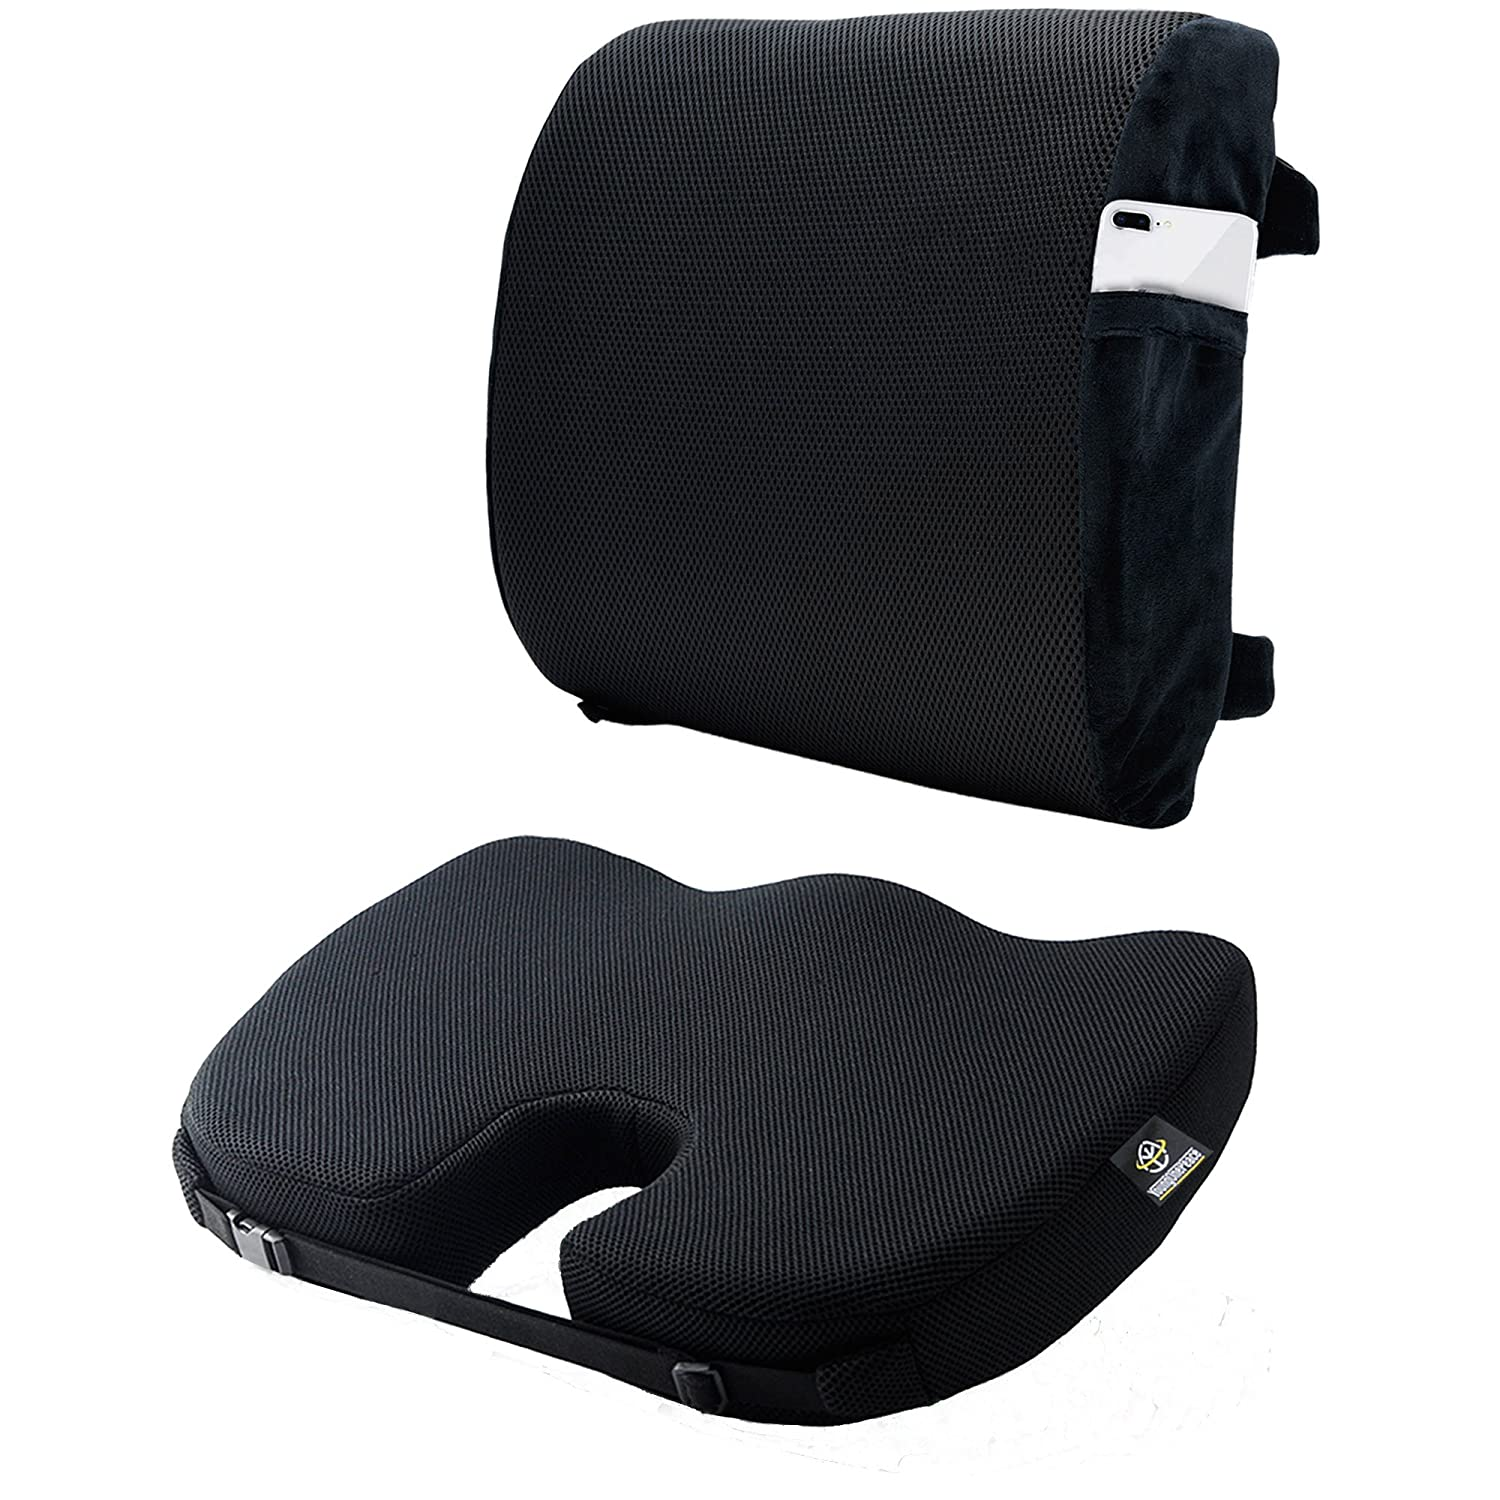 Black Seat Cushion Set For Car Office Airplane Chair - Coccyx Orthopedic Memory Foam and Back Pillow for Lower Back Pain - Tailbone Sciatica Pain Relief, Lumbar Support, Improves Posture Young One Peace